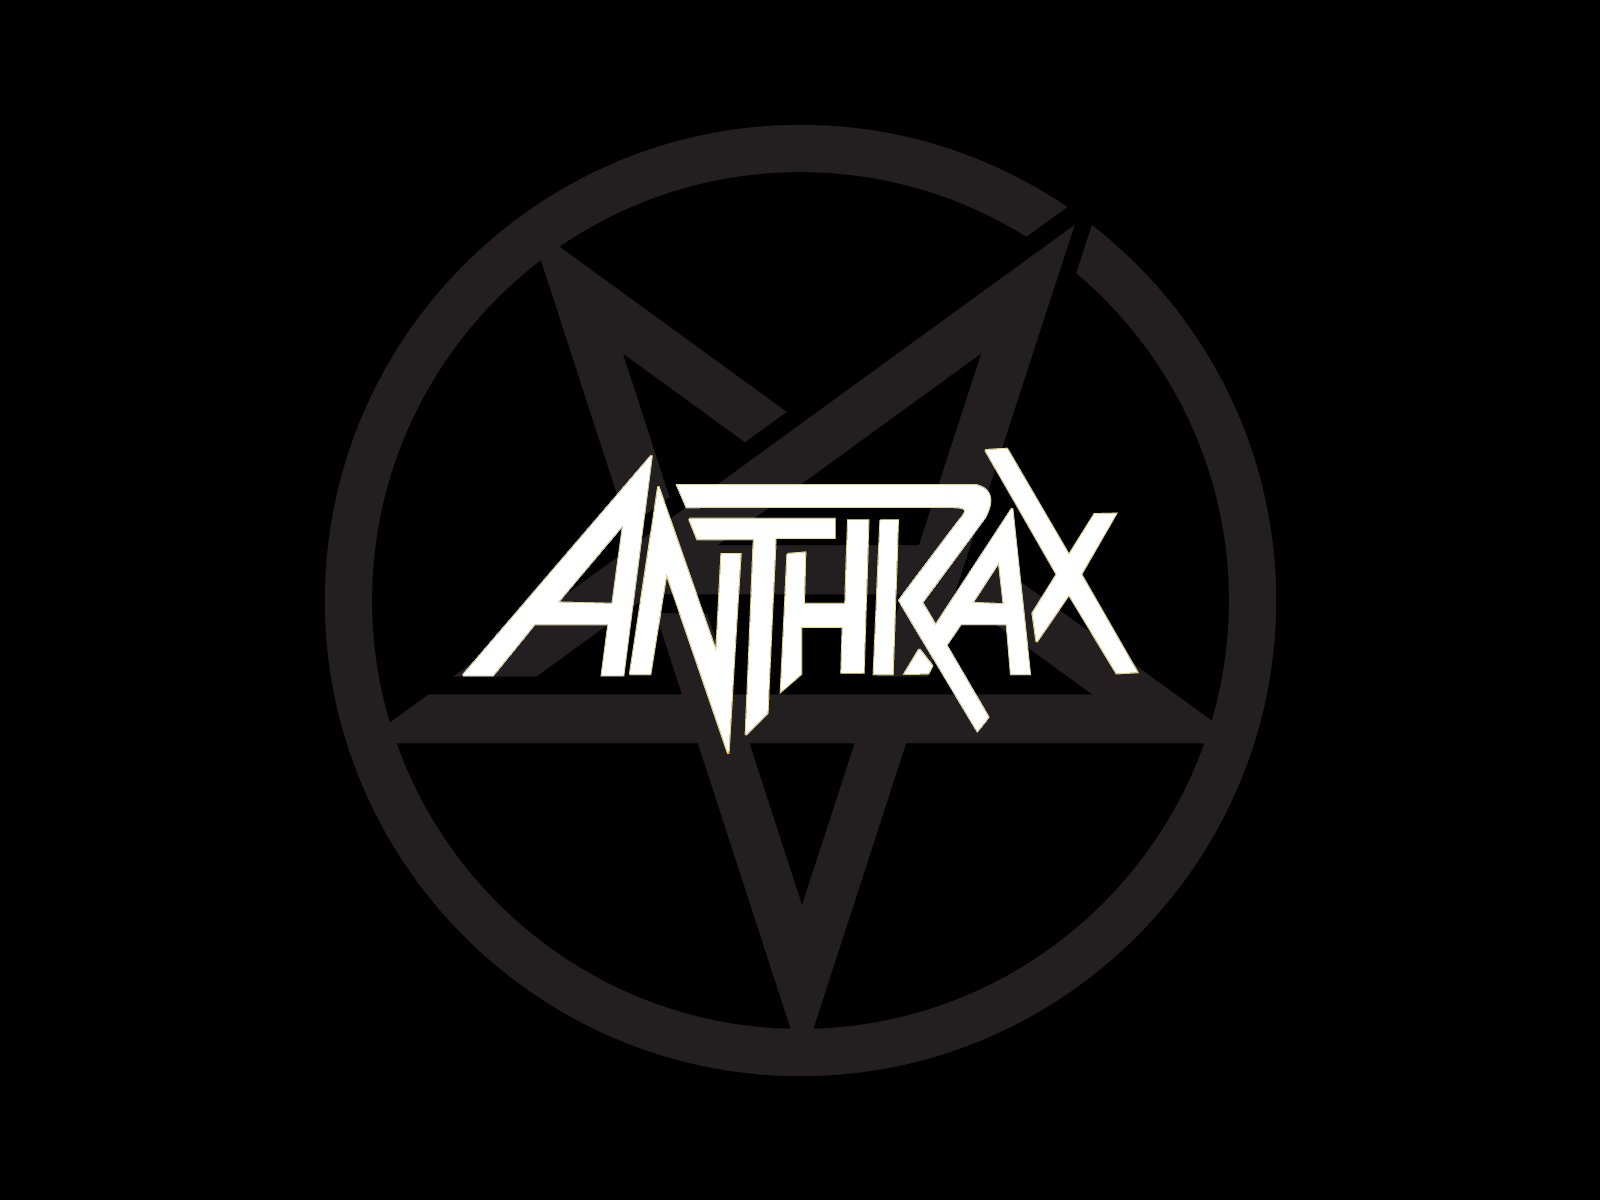 Anthrax Wallpaper and Background Image 1600x1200 ID246458 1600x1200